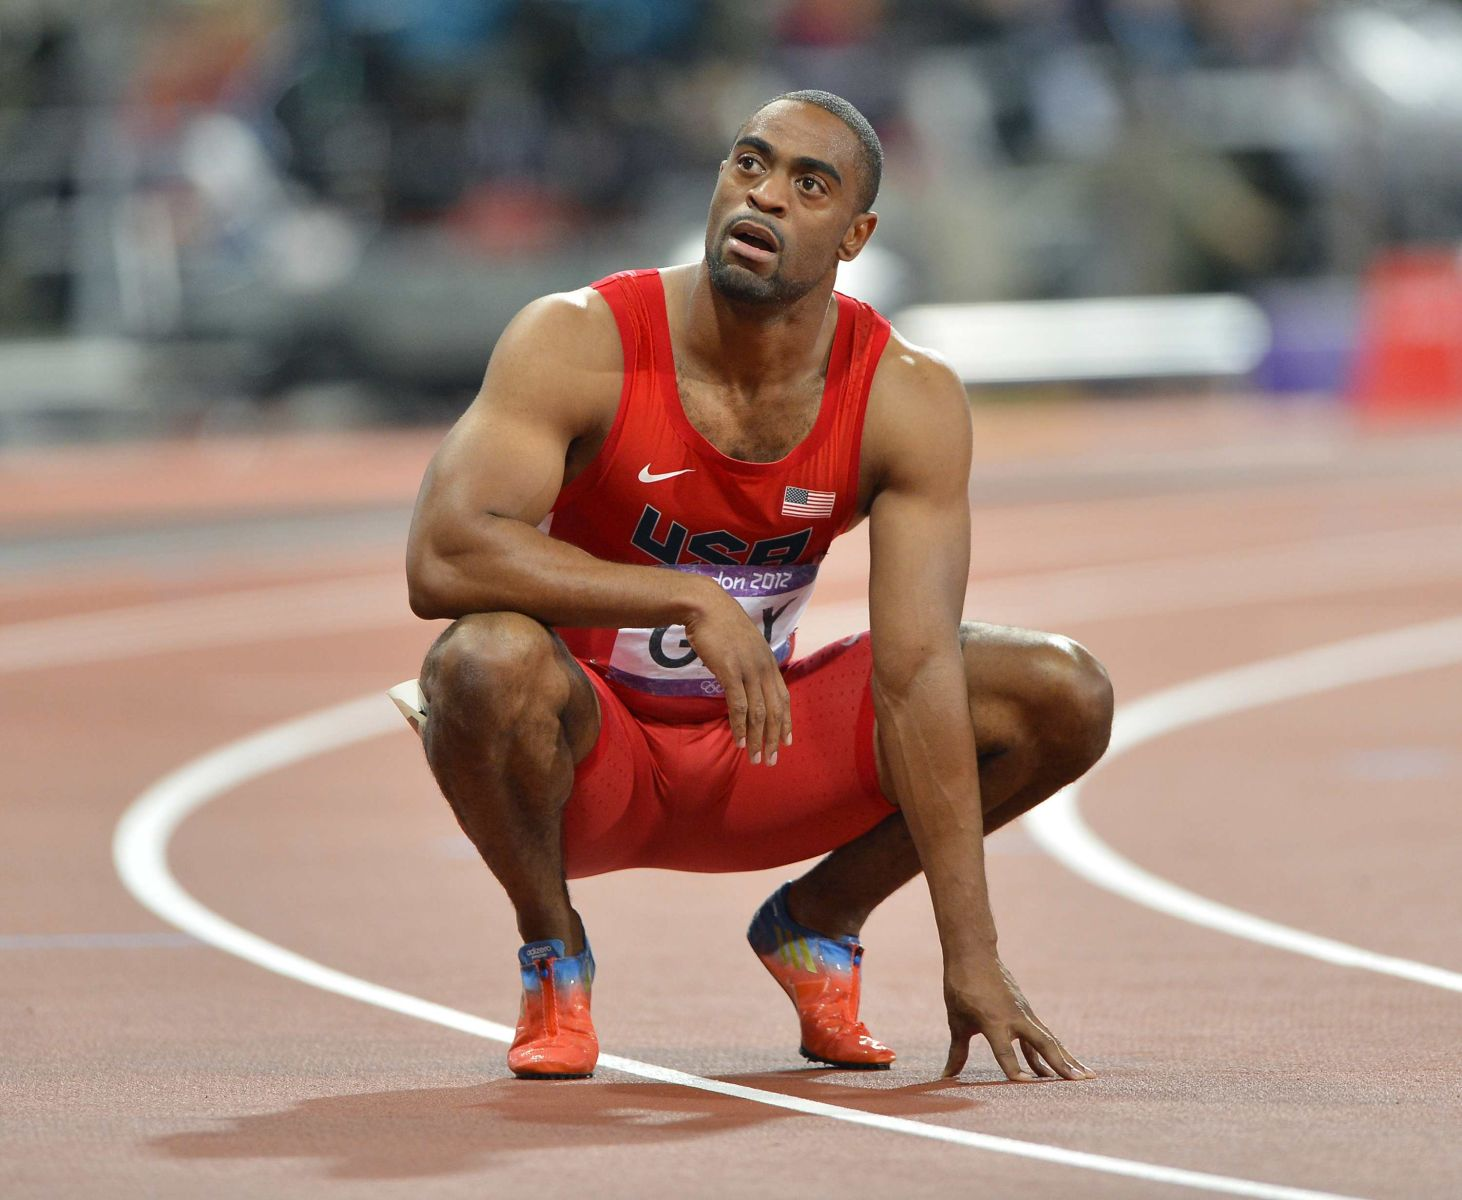 Top US sprinter Tyson Gay and Jamaica's former 100m world record holder Asafa Powell have failed drug tests. Gay, 30, the joint-second fastest man over 100m, was notified by the US Anti-Doping Agency on Friday July 12, 2013, that his A sample from an out-of-competition test in May had returned a positive. Powell, the all-time fourth quickest, was positive for a banned stimulant at June's Jamaican championships. File photo : A stunned Tyson Gay of the USA reacts following the men's 100m sprint at Olympic Stadium during the 2012 Summer Olympic Games in London, UK, Sunday, August 5, 2012. Gay finished fourth in the race, and Bailey, fifth. Photo by David Eulitt/Kansas City Star/MCT/ABACAPRESS. COM DOPING AFERA DOPINGOWA LEKKA ATLETYKA LEKKOATLETYKA FOT. ABACA/NEWSPIX.PL POLAND ONLY !!! --- Newspix.pl *** Local Caption *** www.newspix.pl mail us: info@newspix.pl call us: 0048 022 23 22 222 --- Polish Picture Agency by Ringier Axel Springer Poland